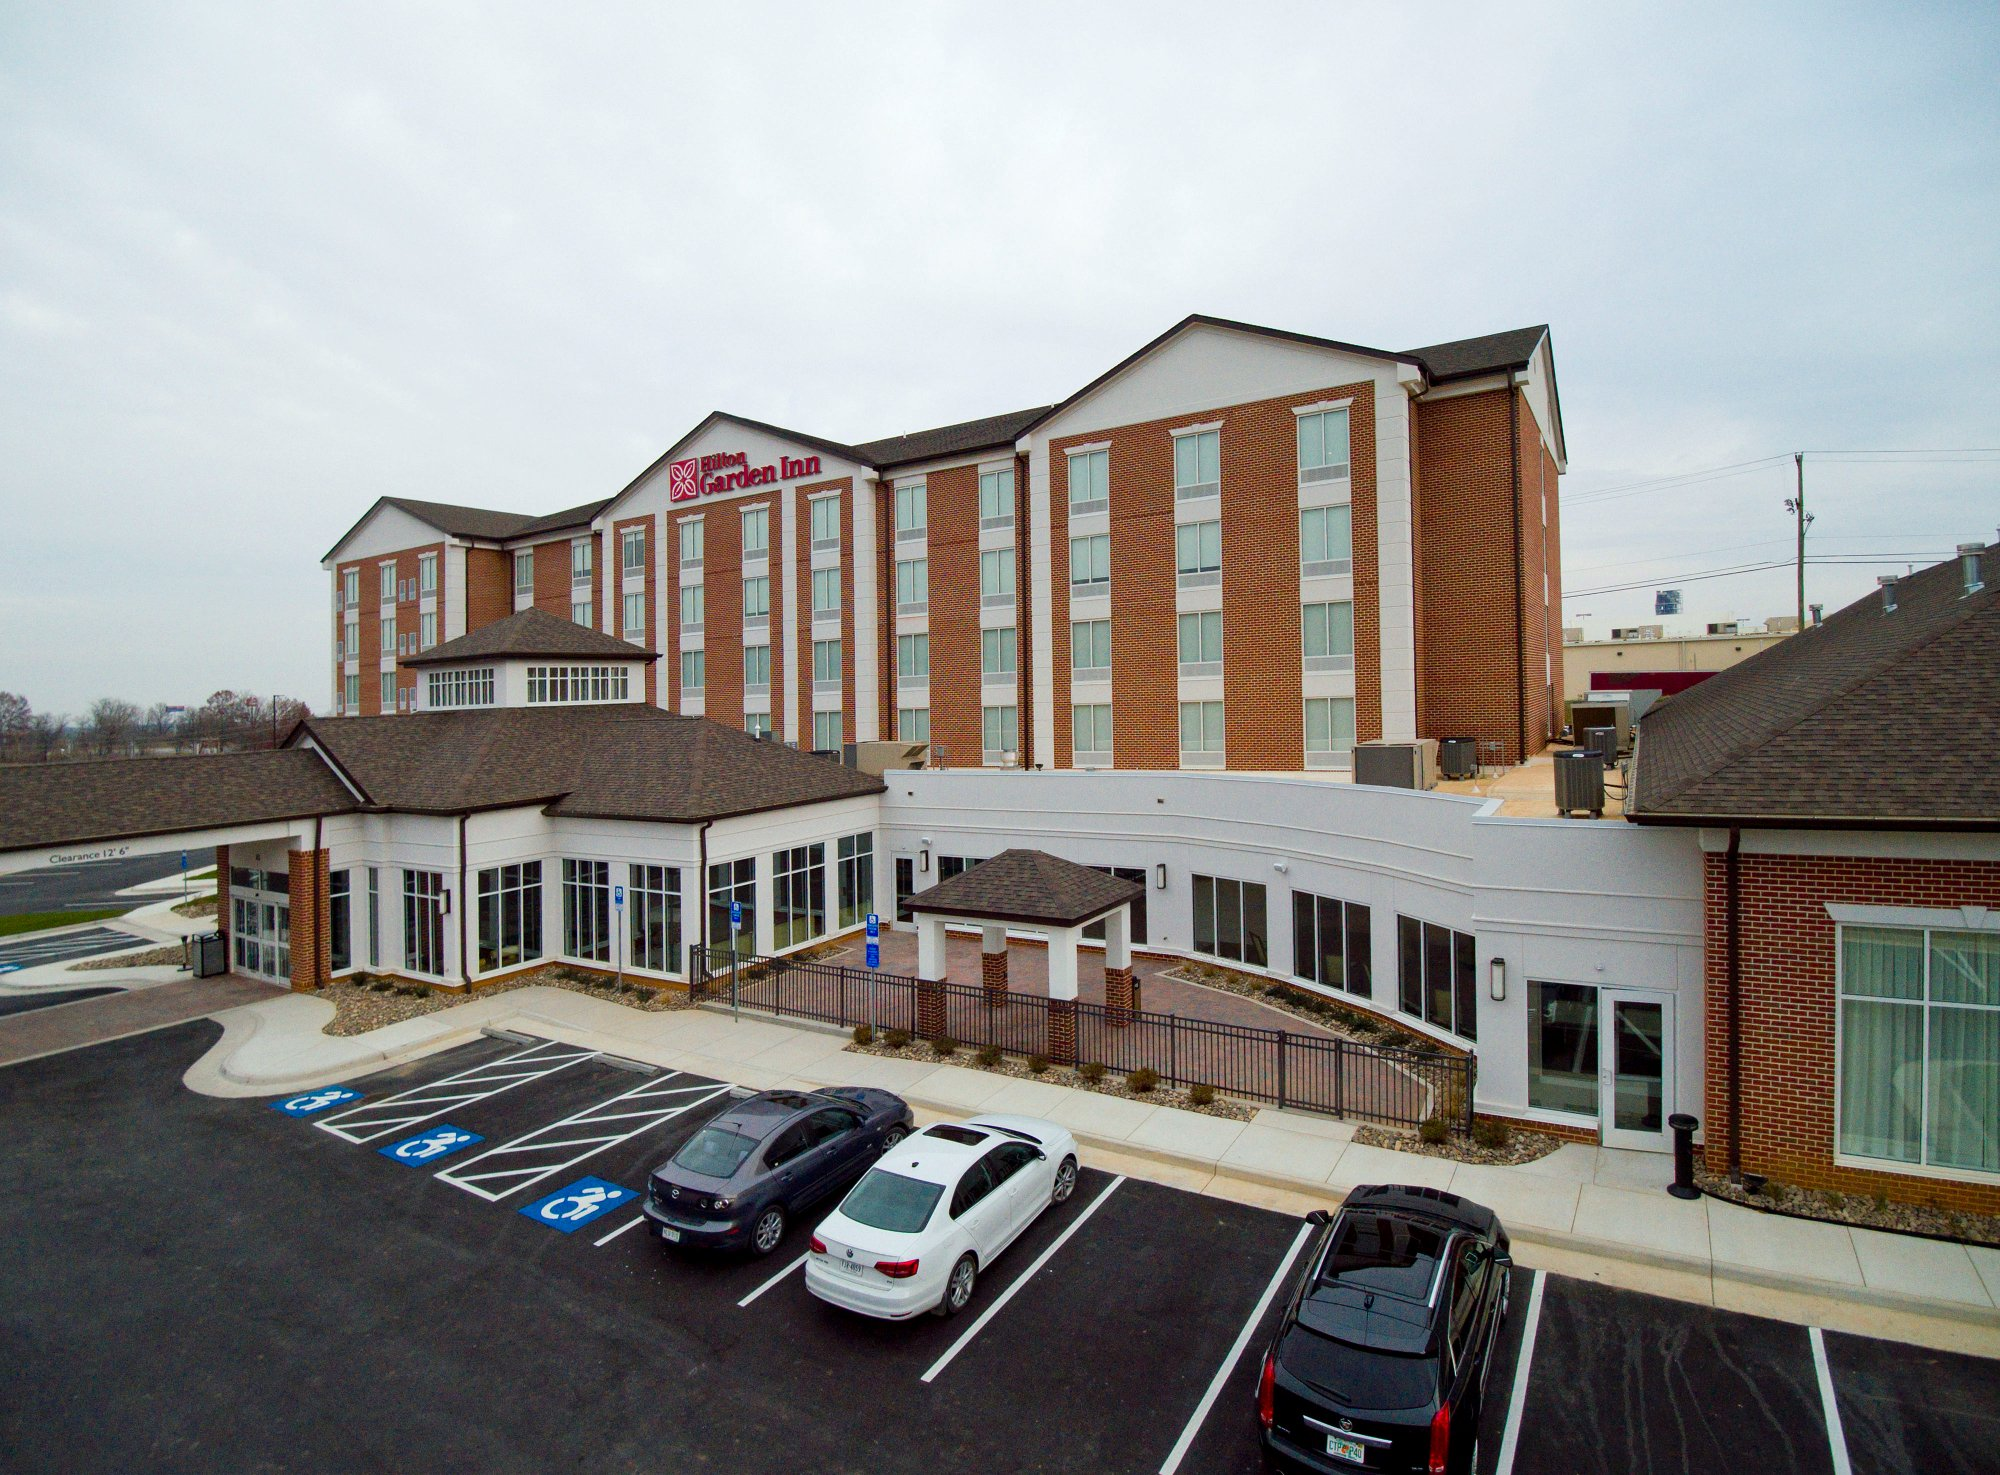 Hilton garden inn martinsburg updated 2017 hotel reviews Hilton garden inn martinsburg wv